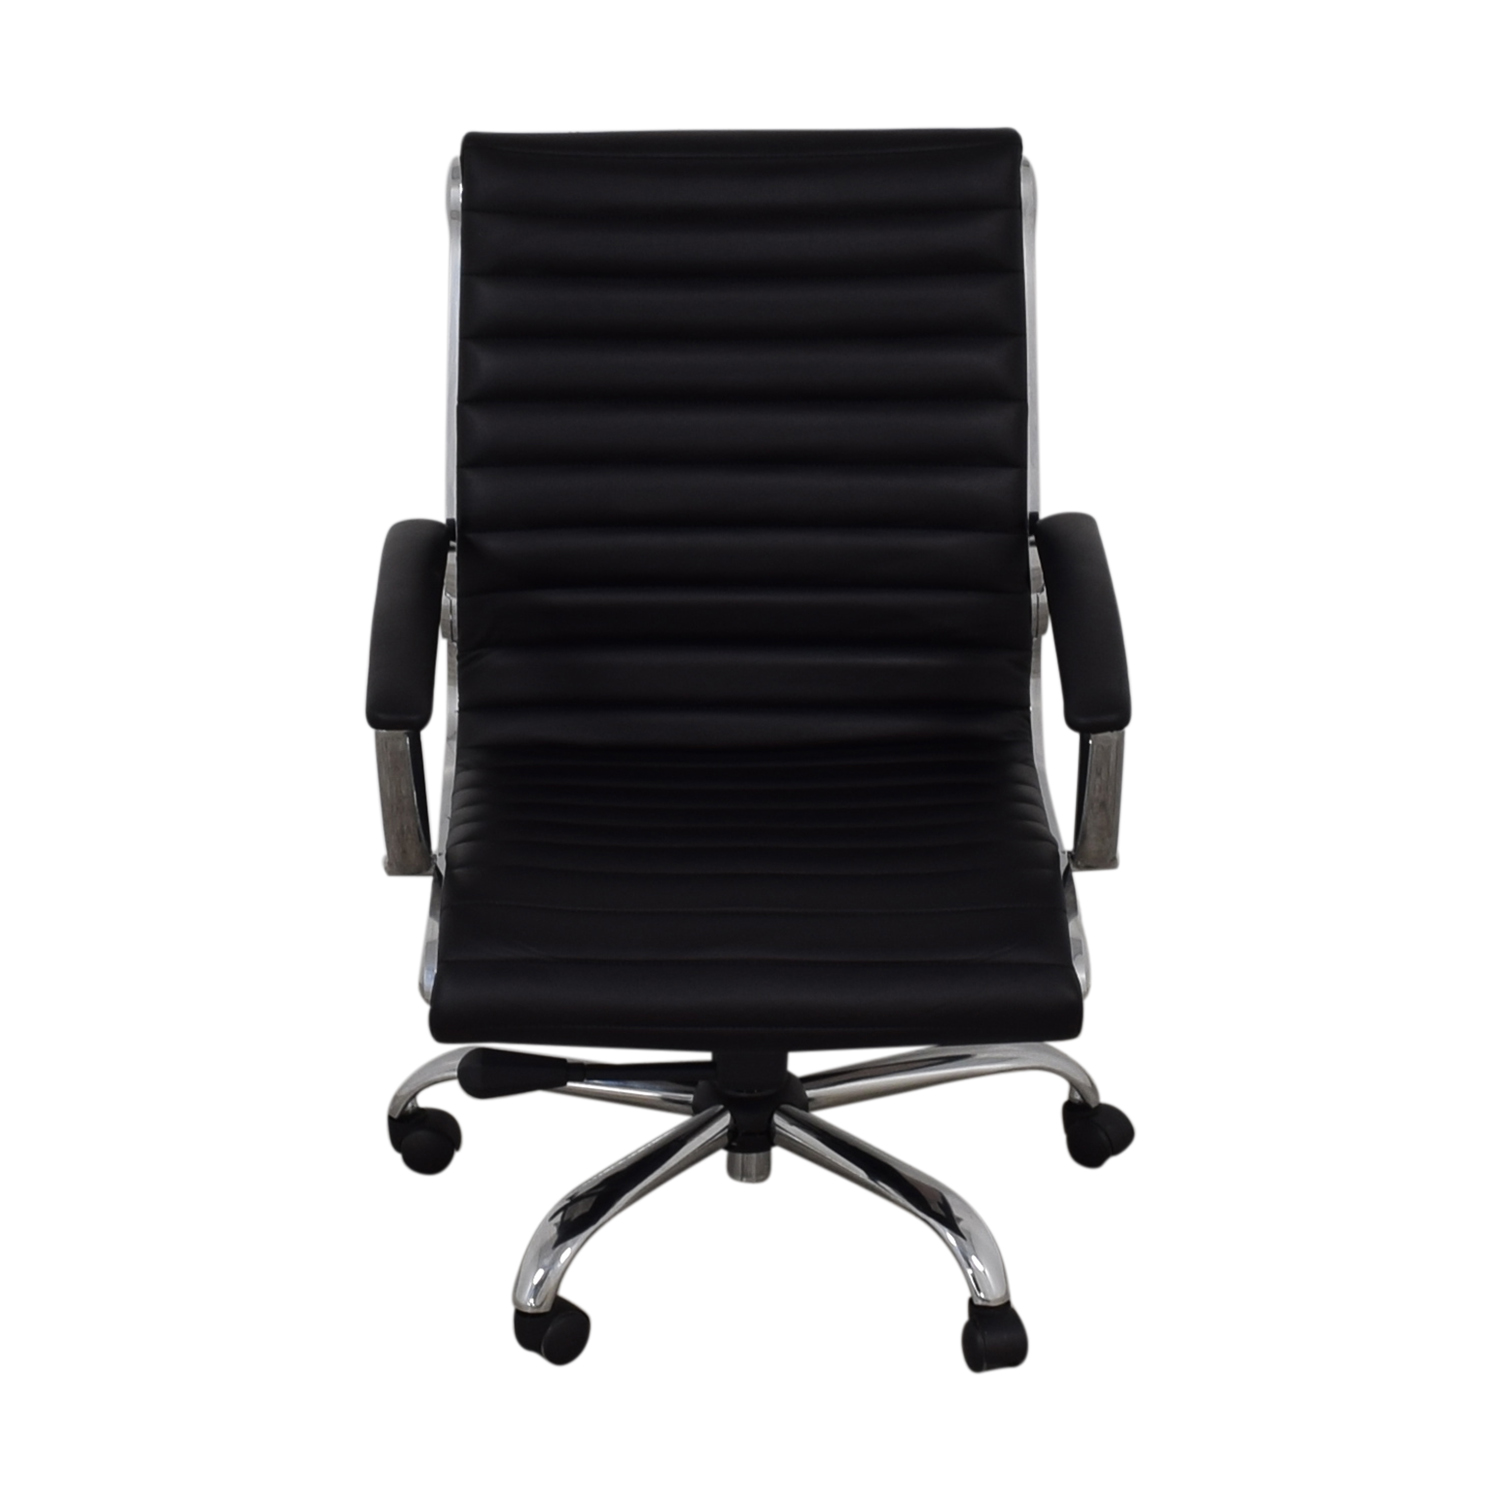 Staples Staples Adjustable Black Office Chair